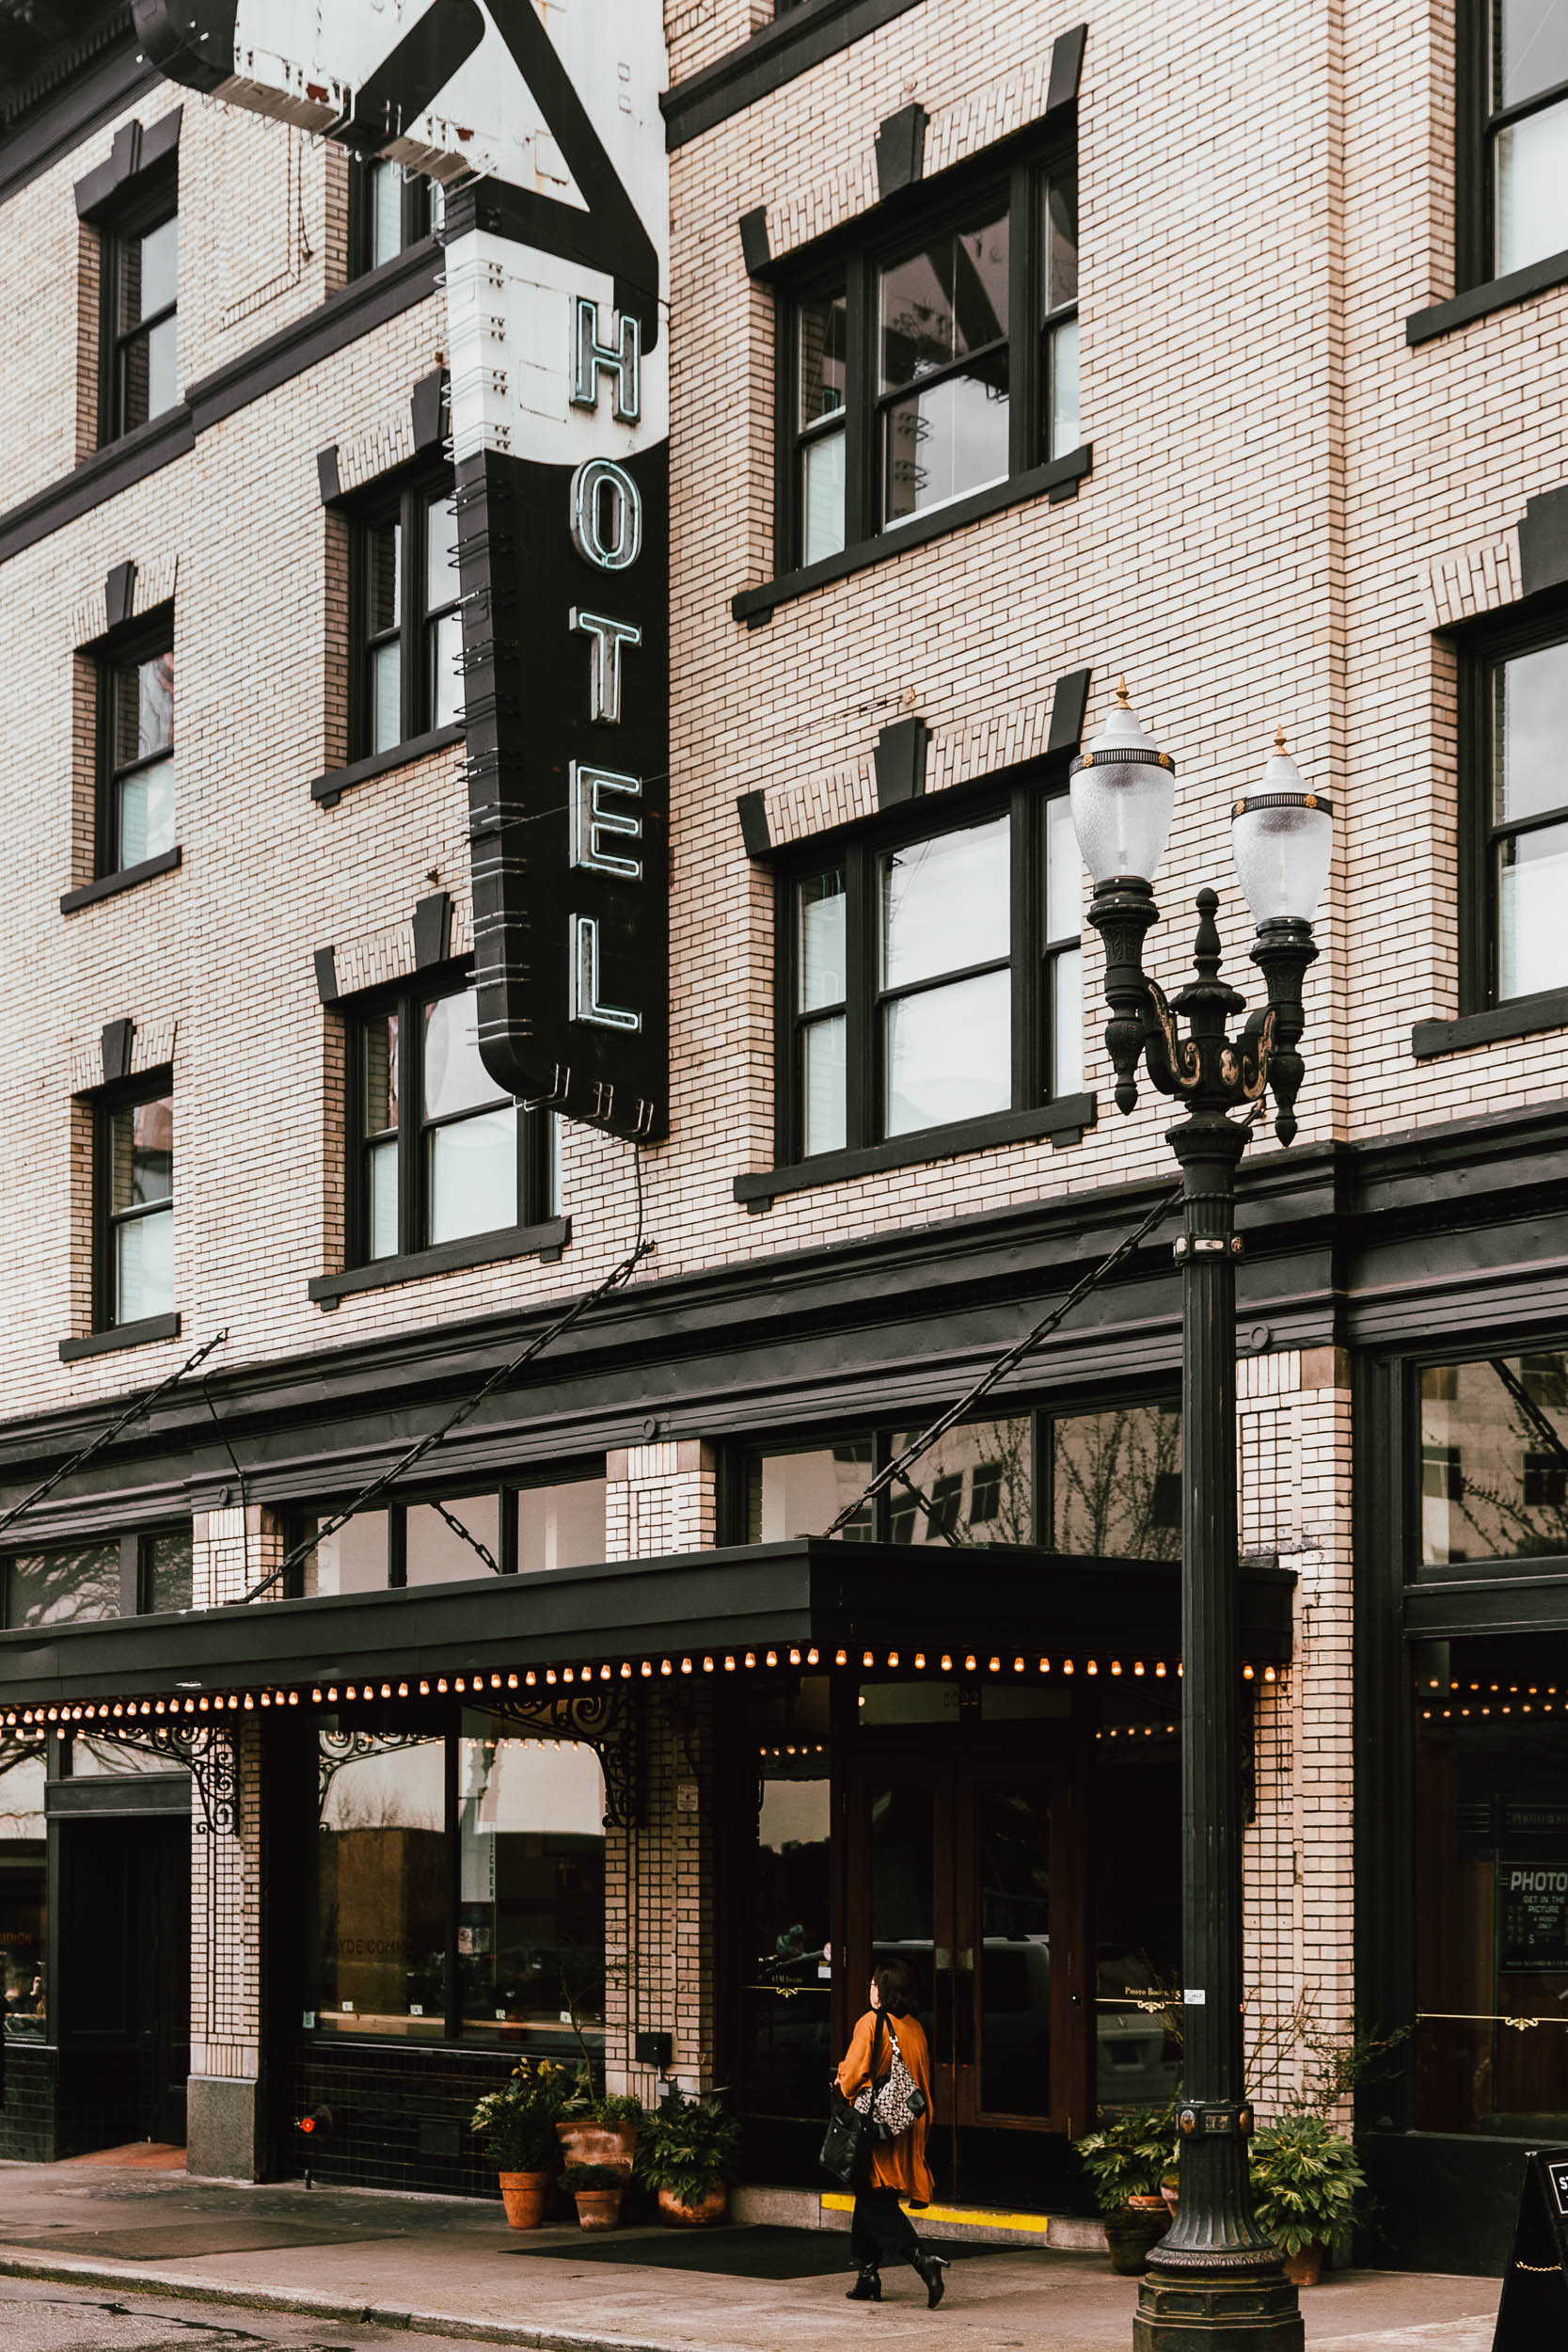 Ace Hotel Portland by Toby Mitchell (4 of 6).jpg